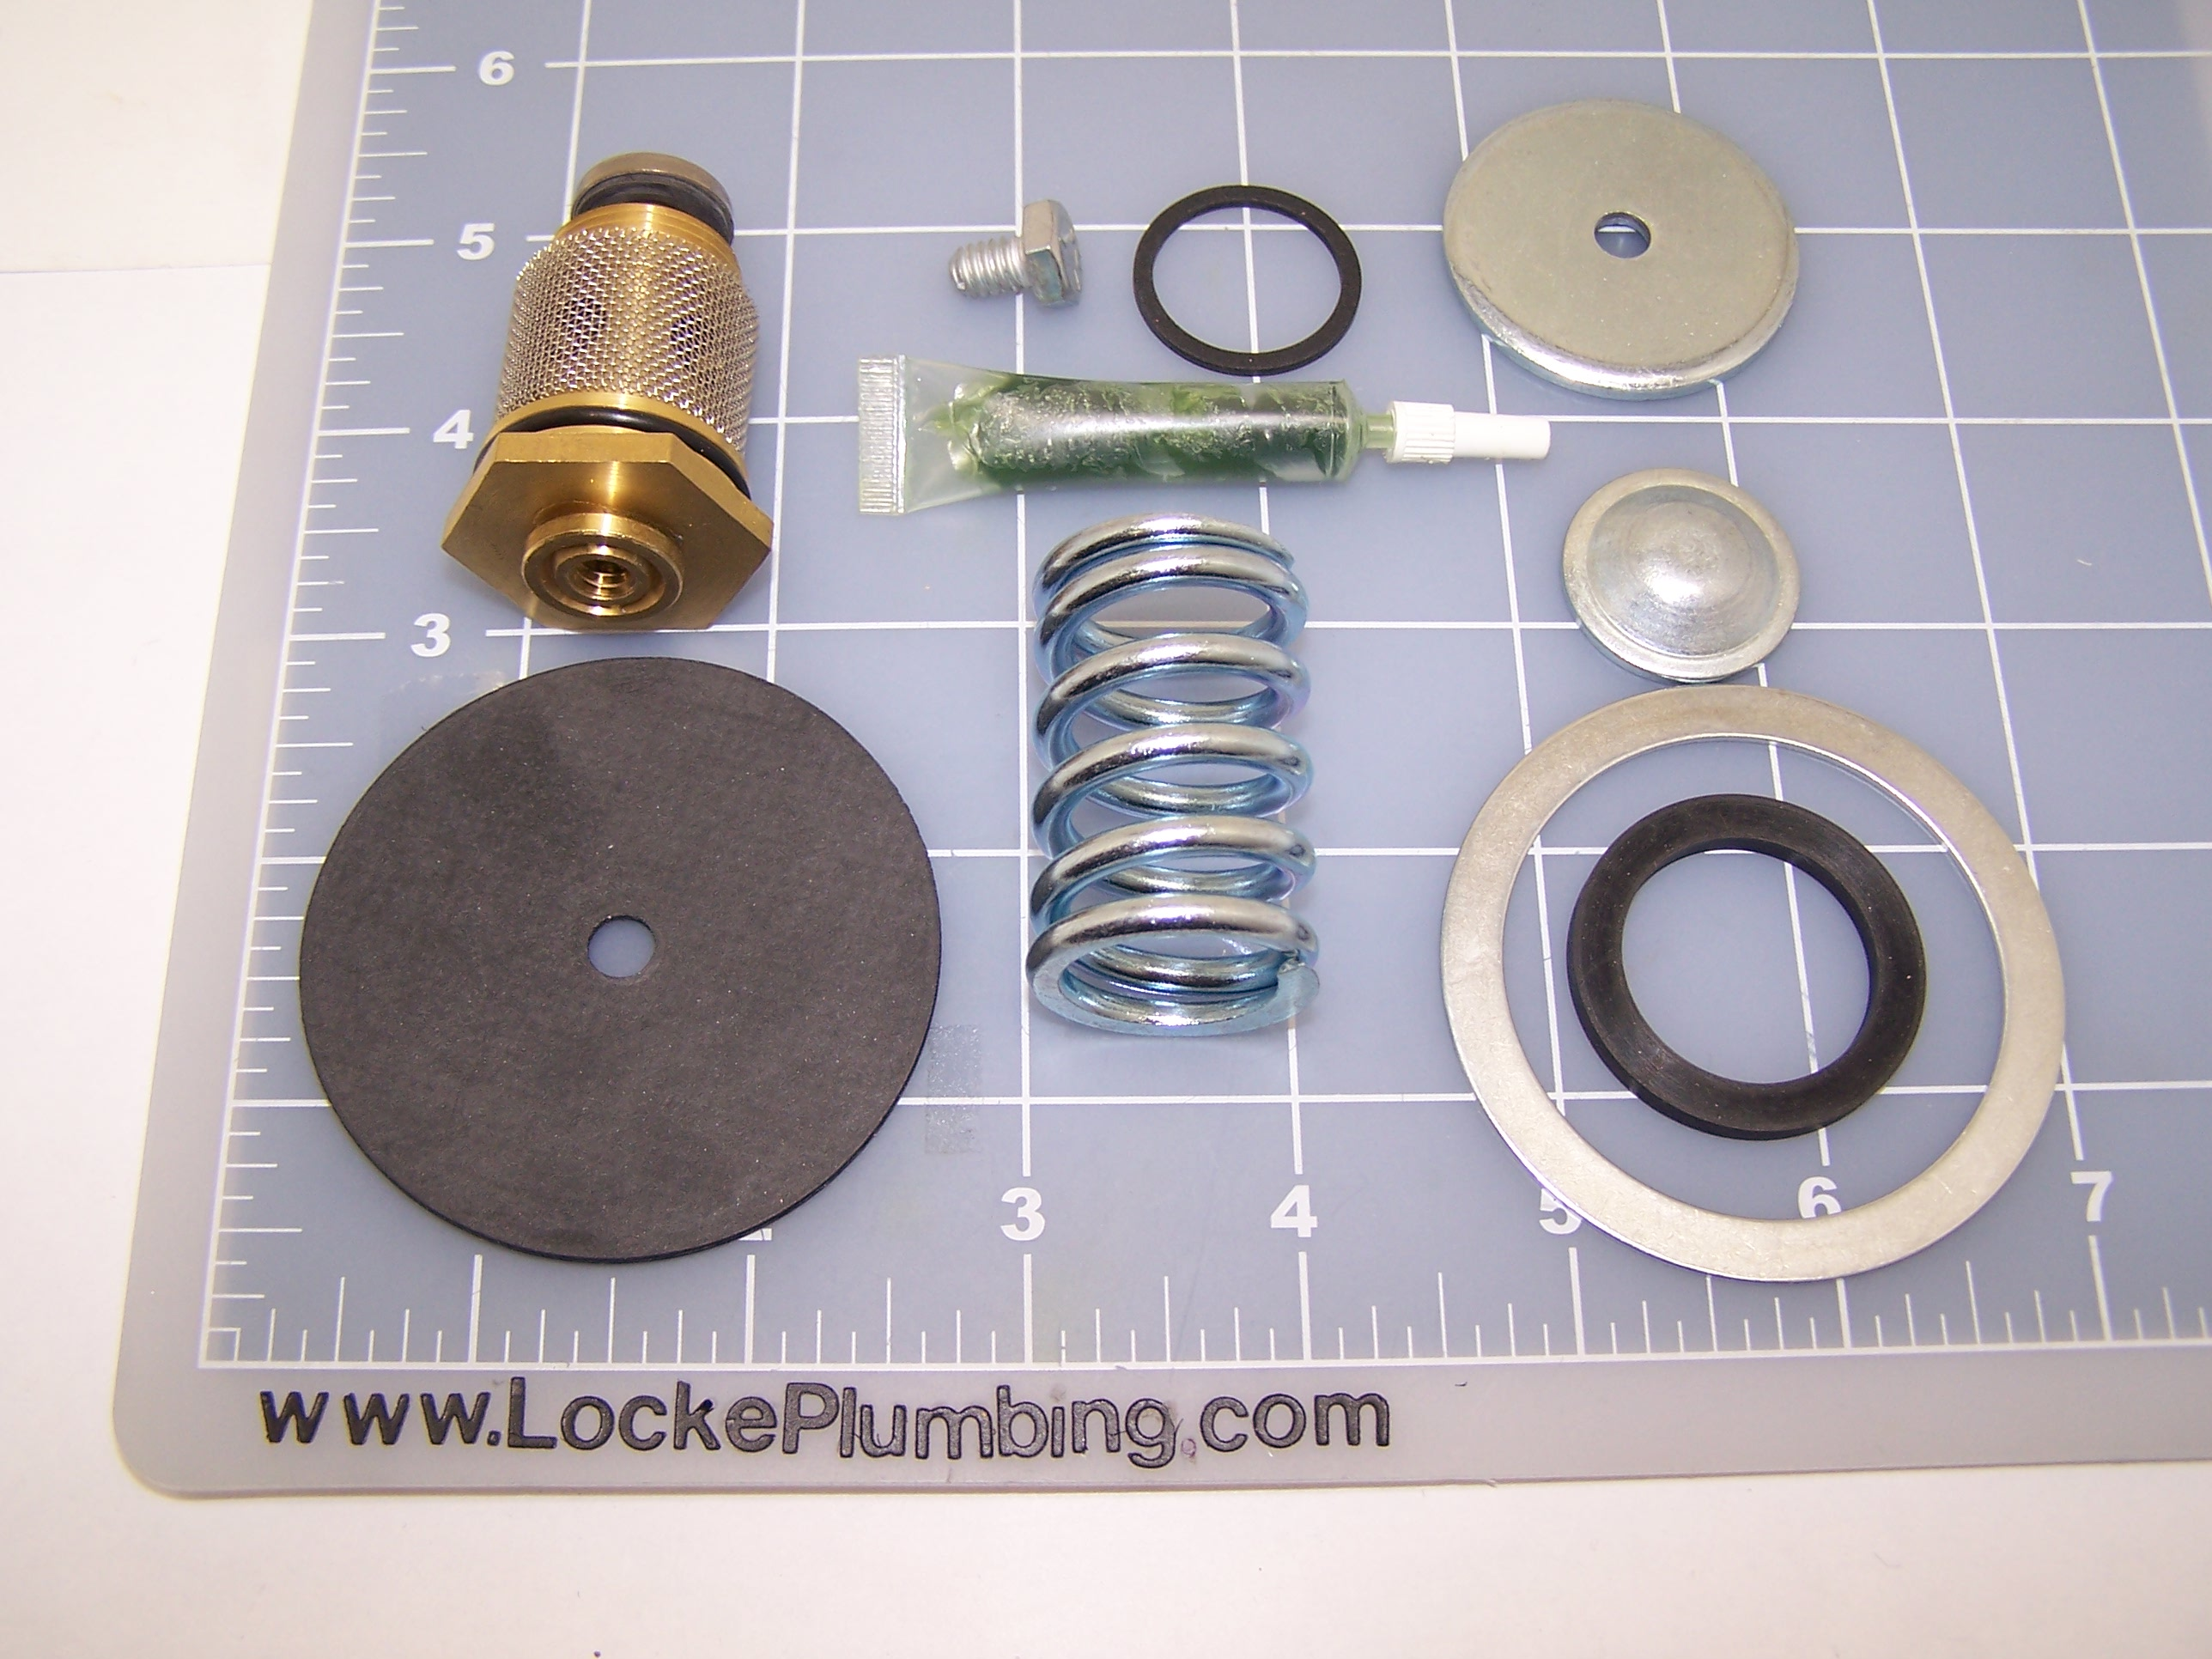 wilkins pressure reducing valve rebuild kit 3 4 34 70xl lead free locke plu. Black Bedroom Furniture Sets. Home Design Ideas